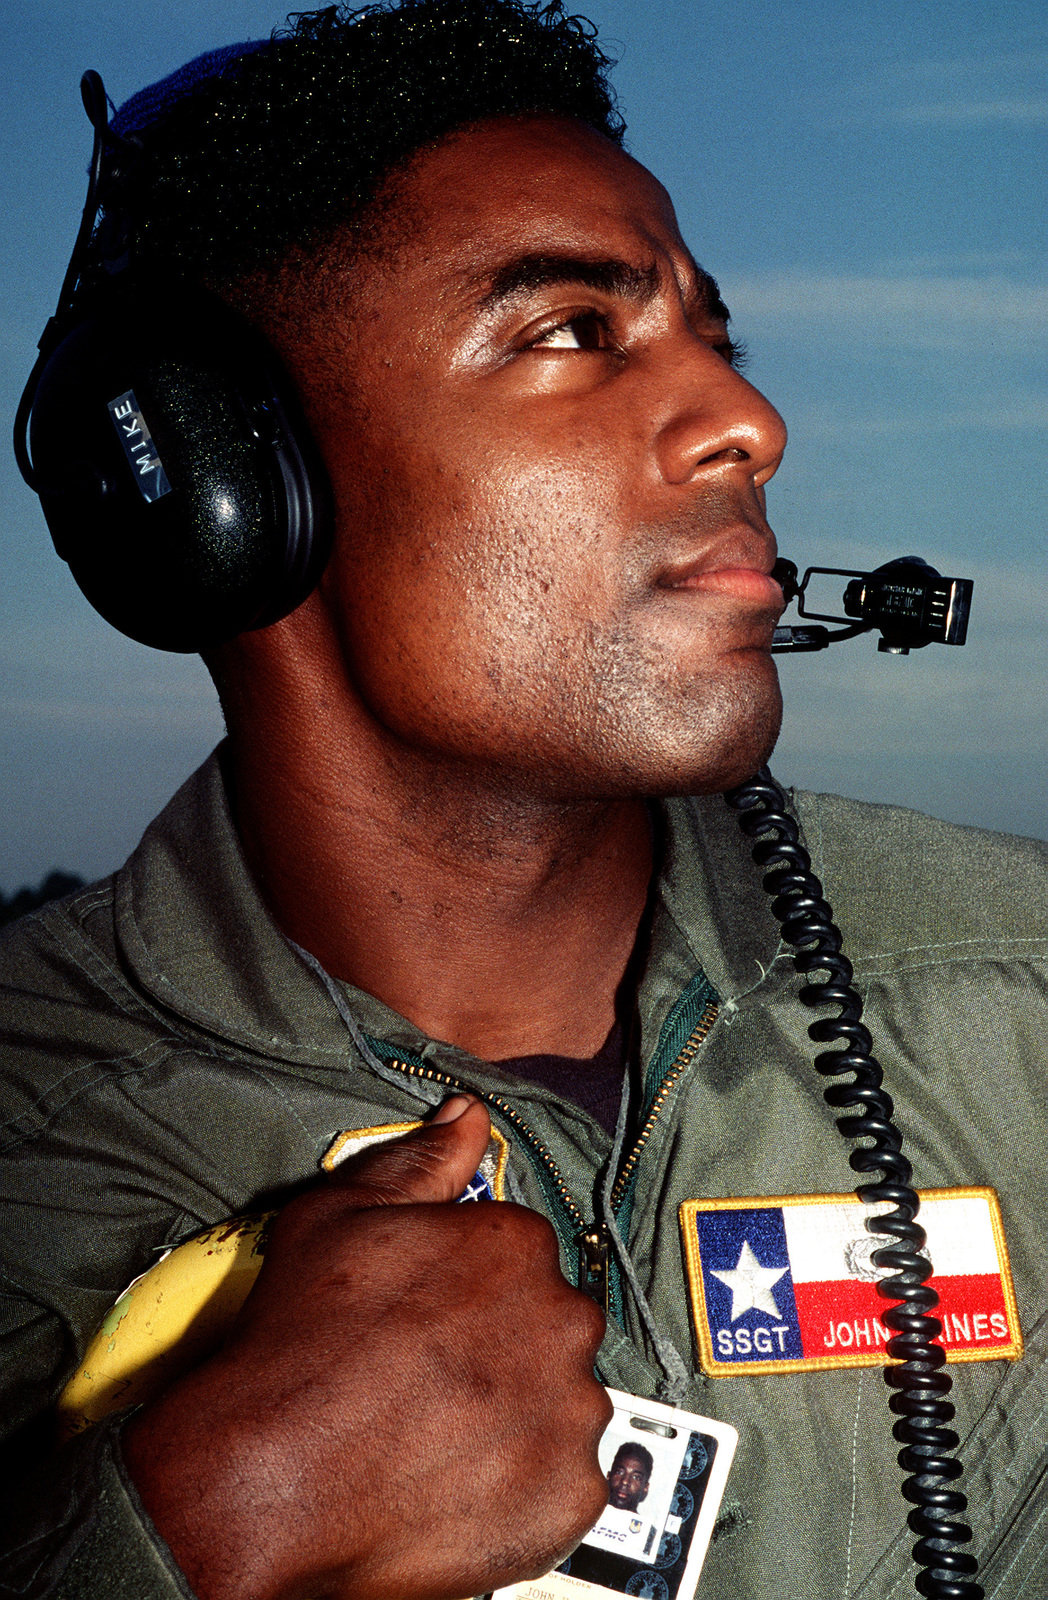 A close up view of STAFF SGT. John Gaines, aircraft electrician, of the 68th Aerial Port Squadron, Kelly AFB, TX, in headset.(Exact date unknown)